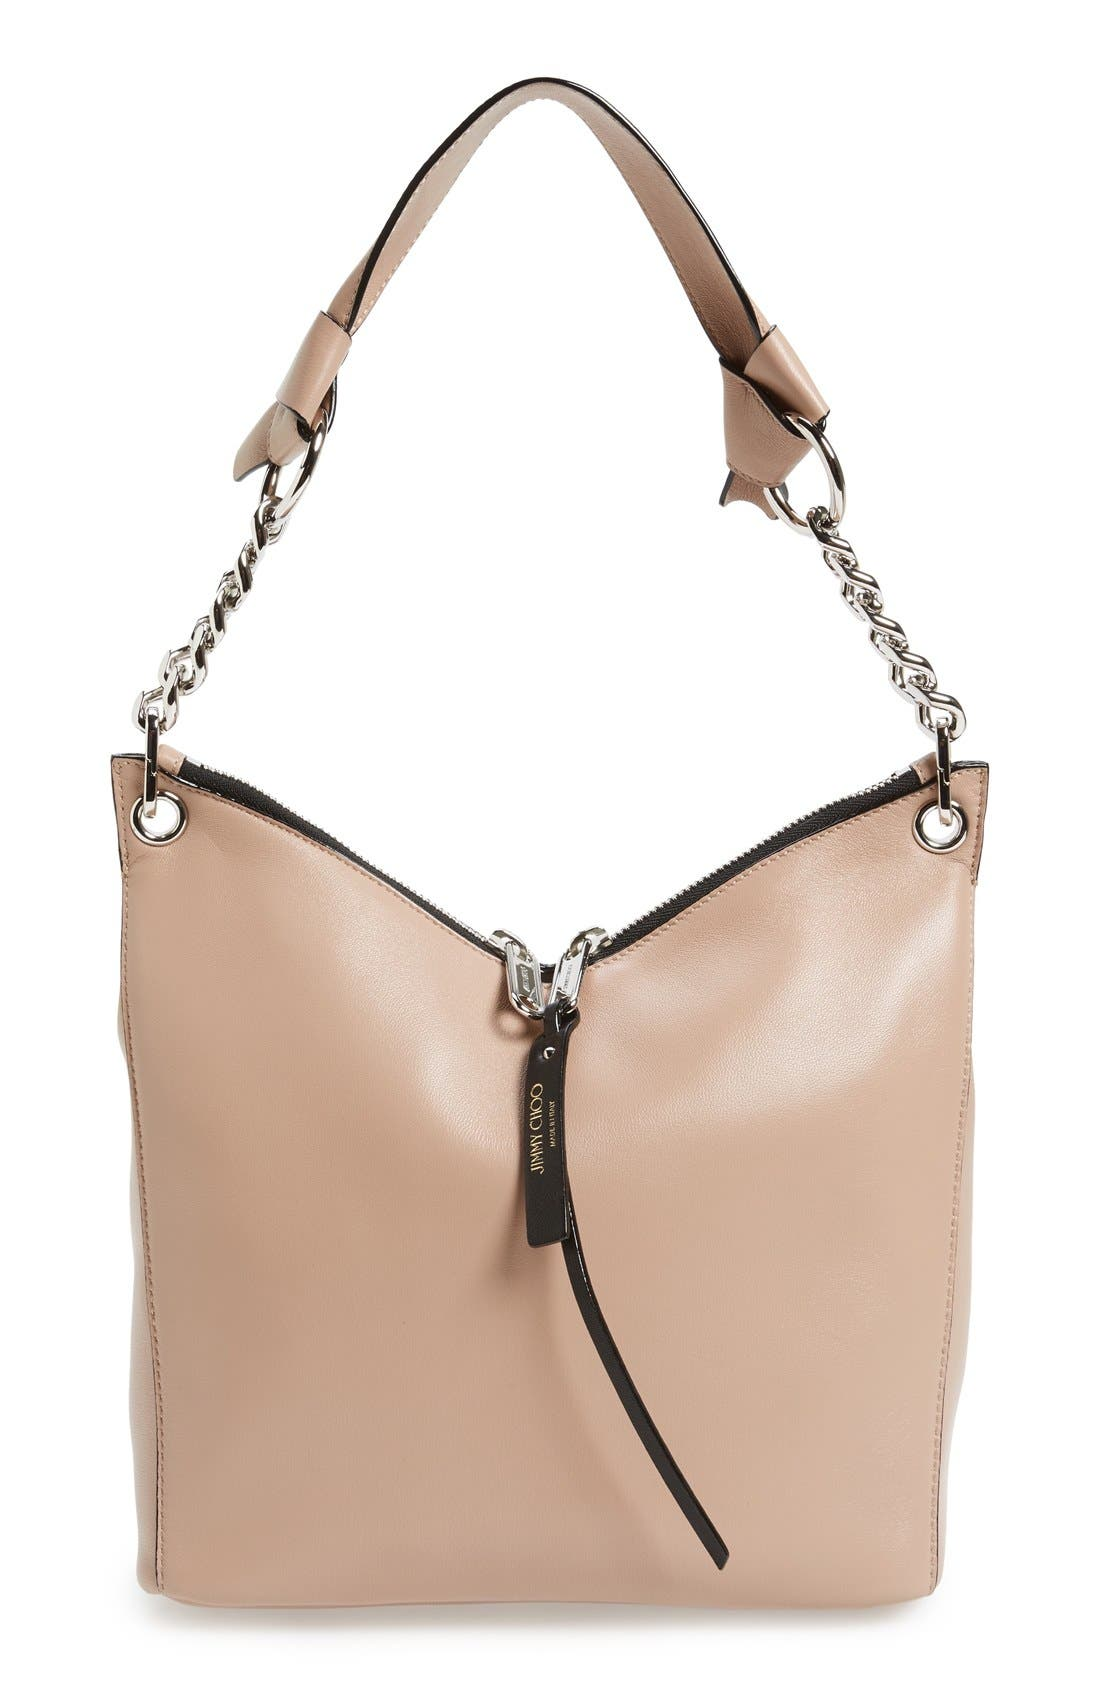 Jimmy Choo 'Small Raven' Nappa Leather Shoulder Bag